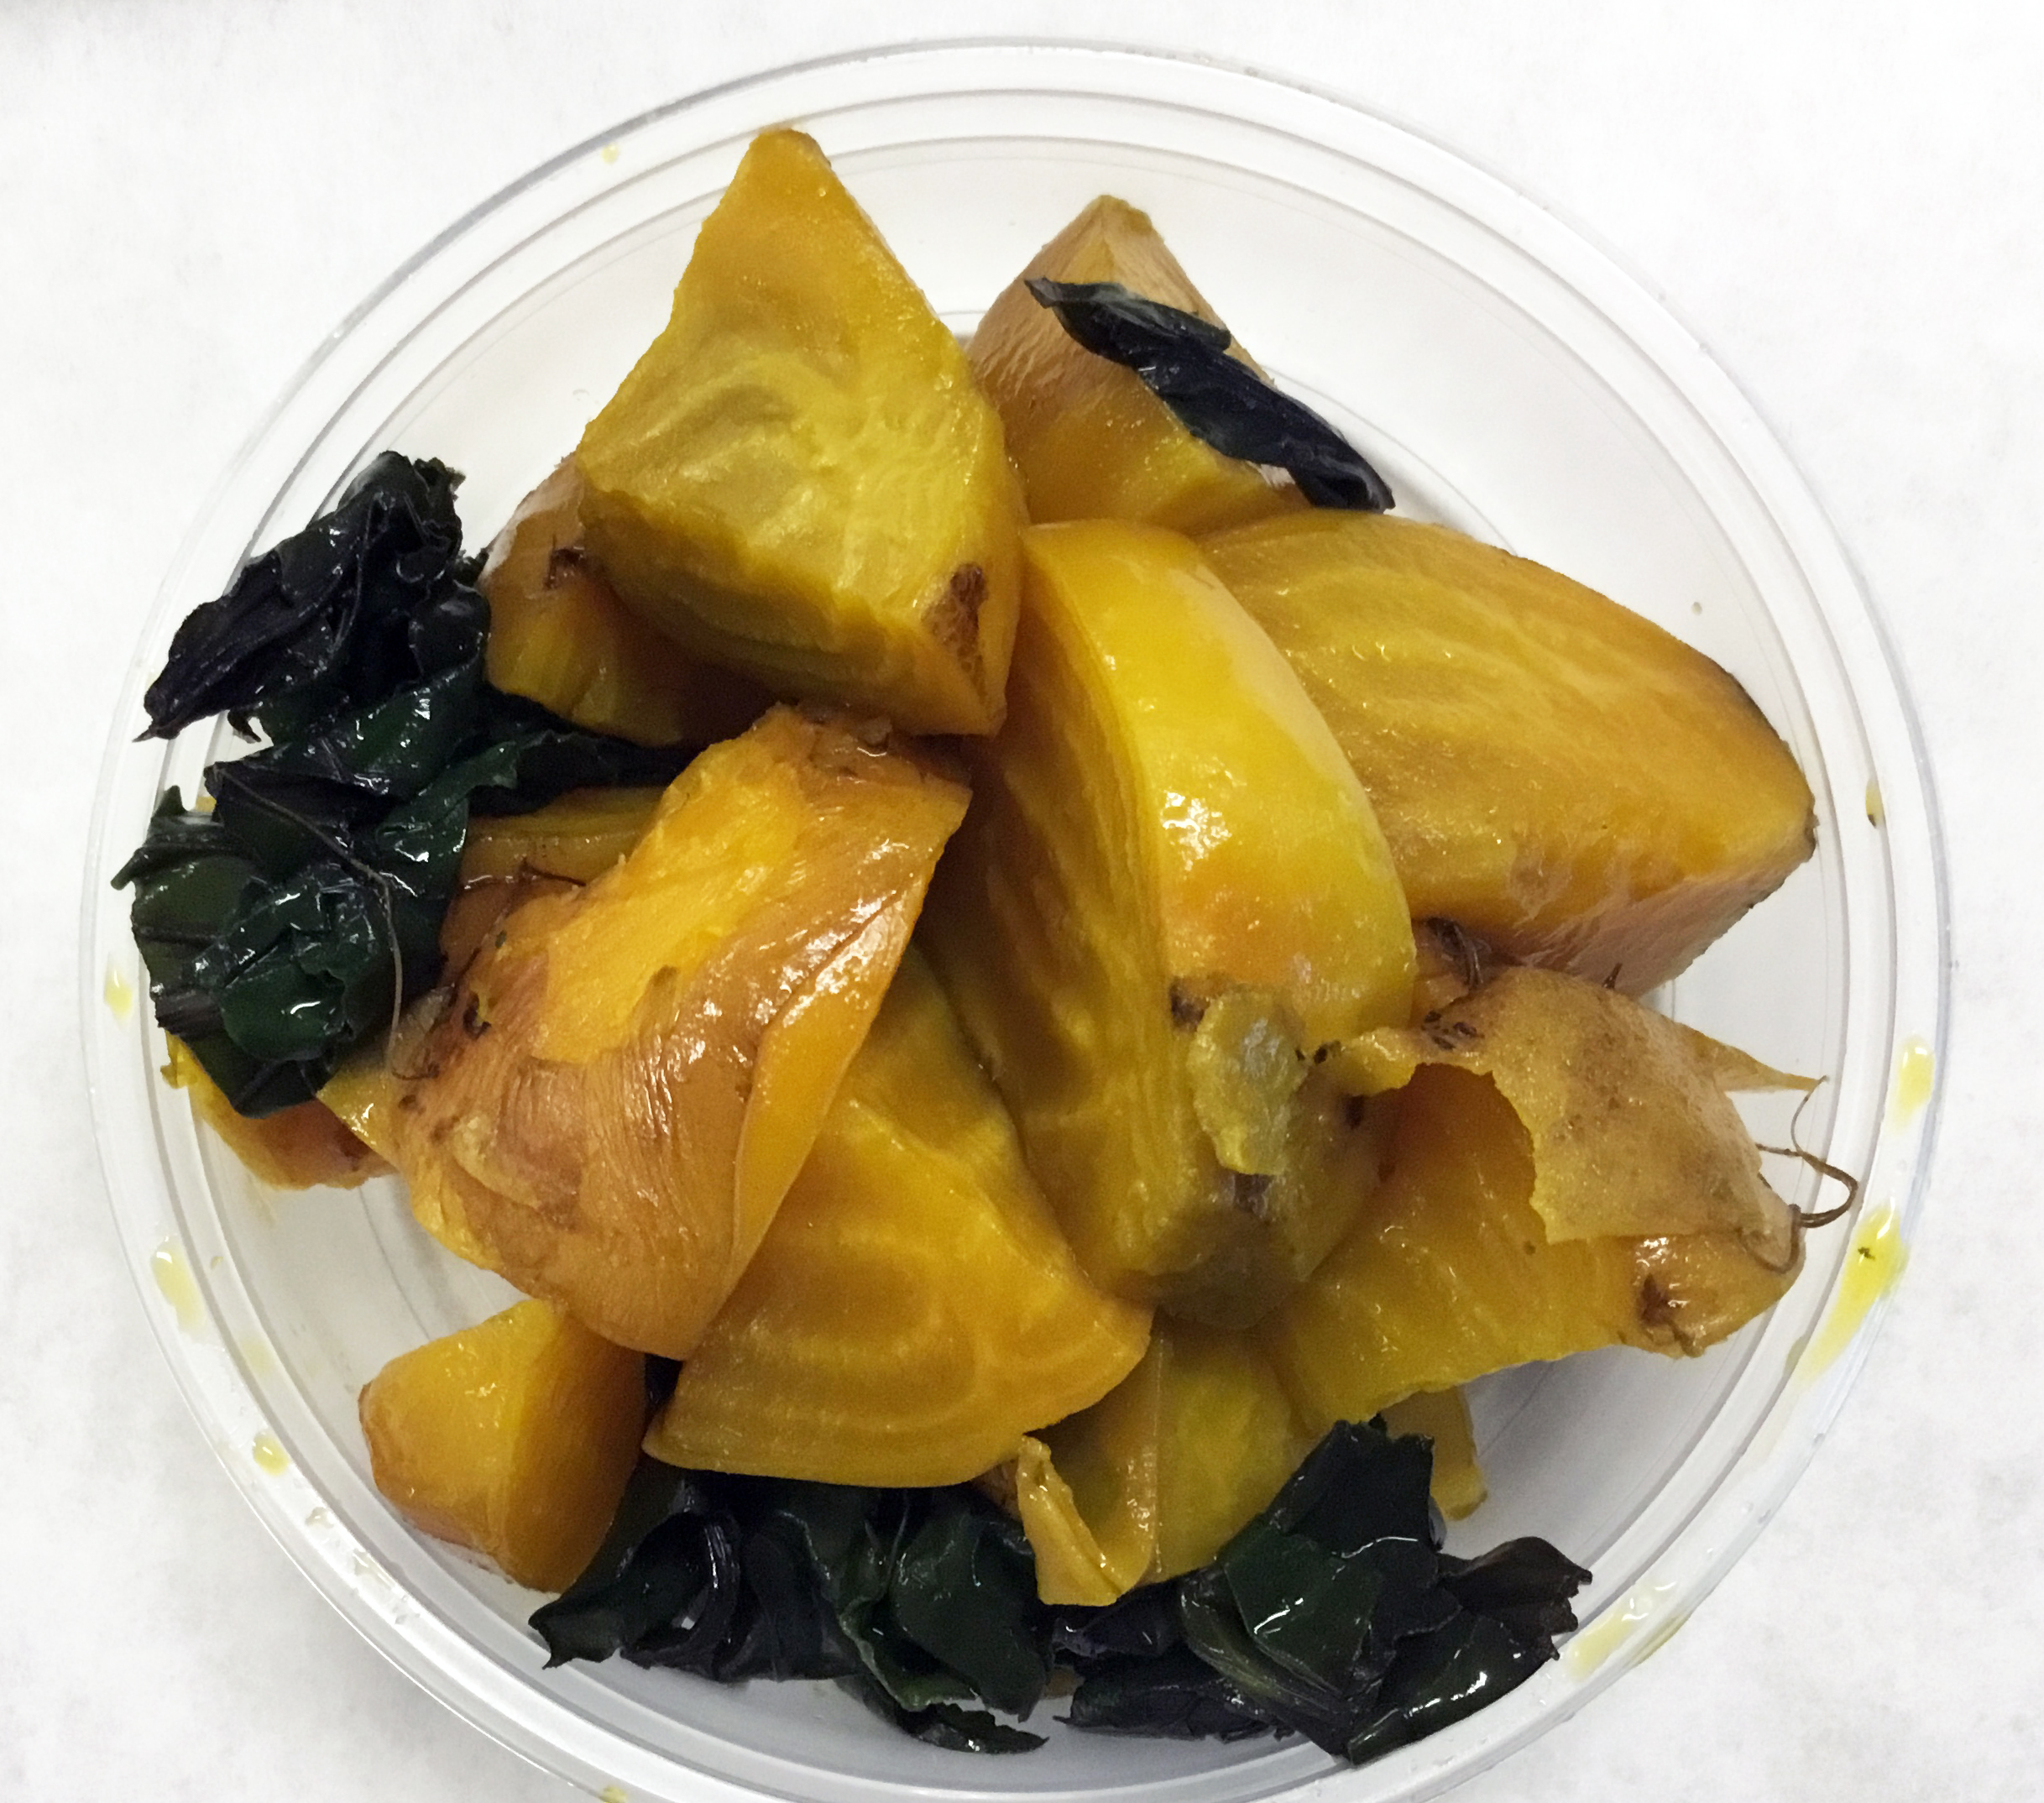 Steamed yellow beets with tops.